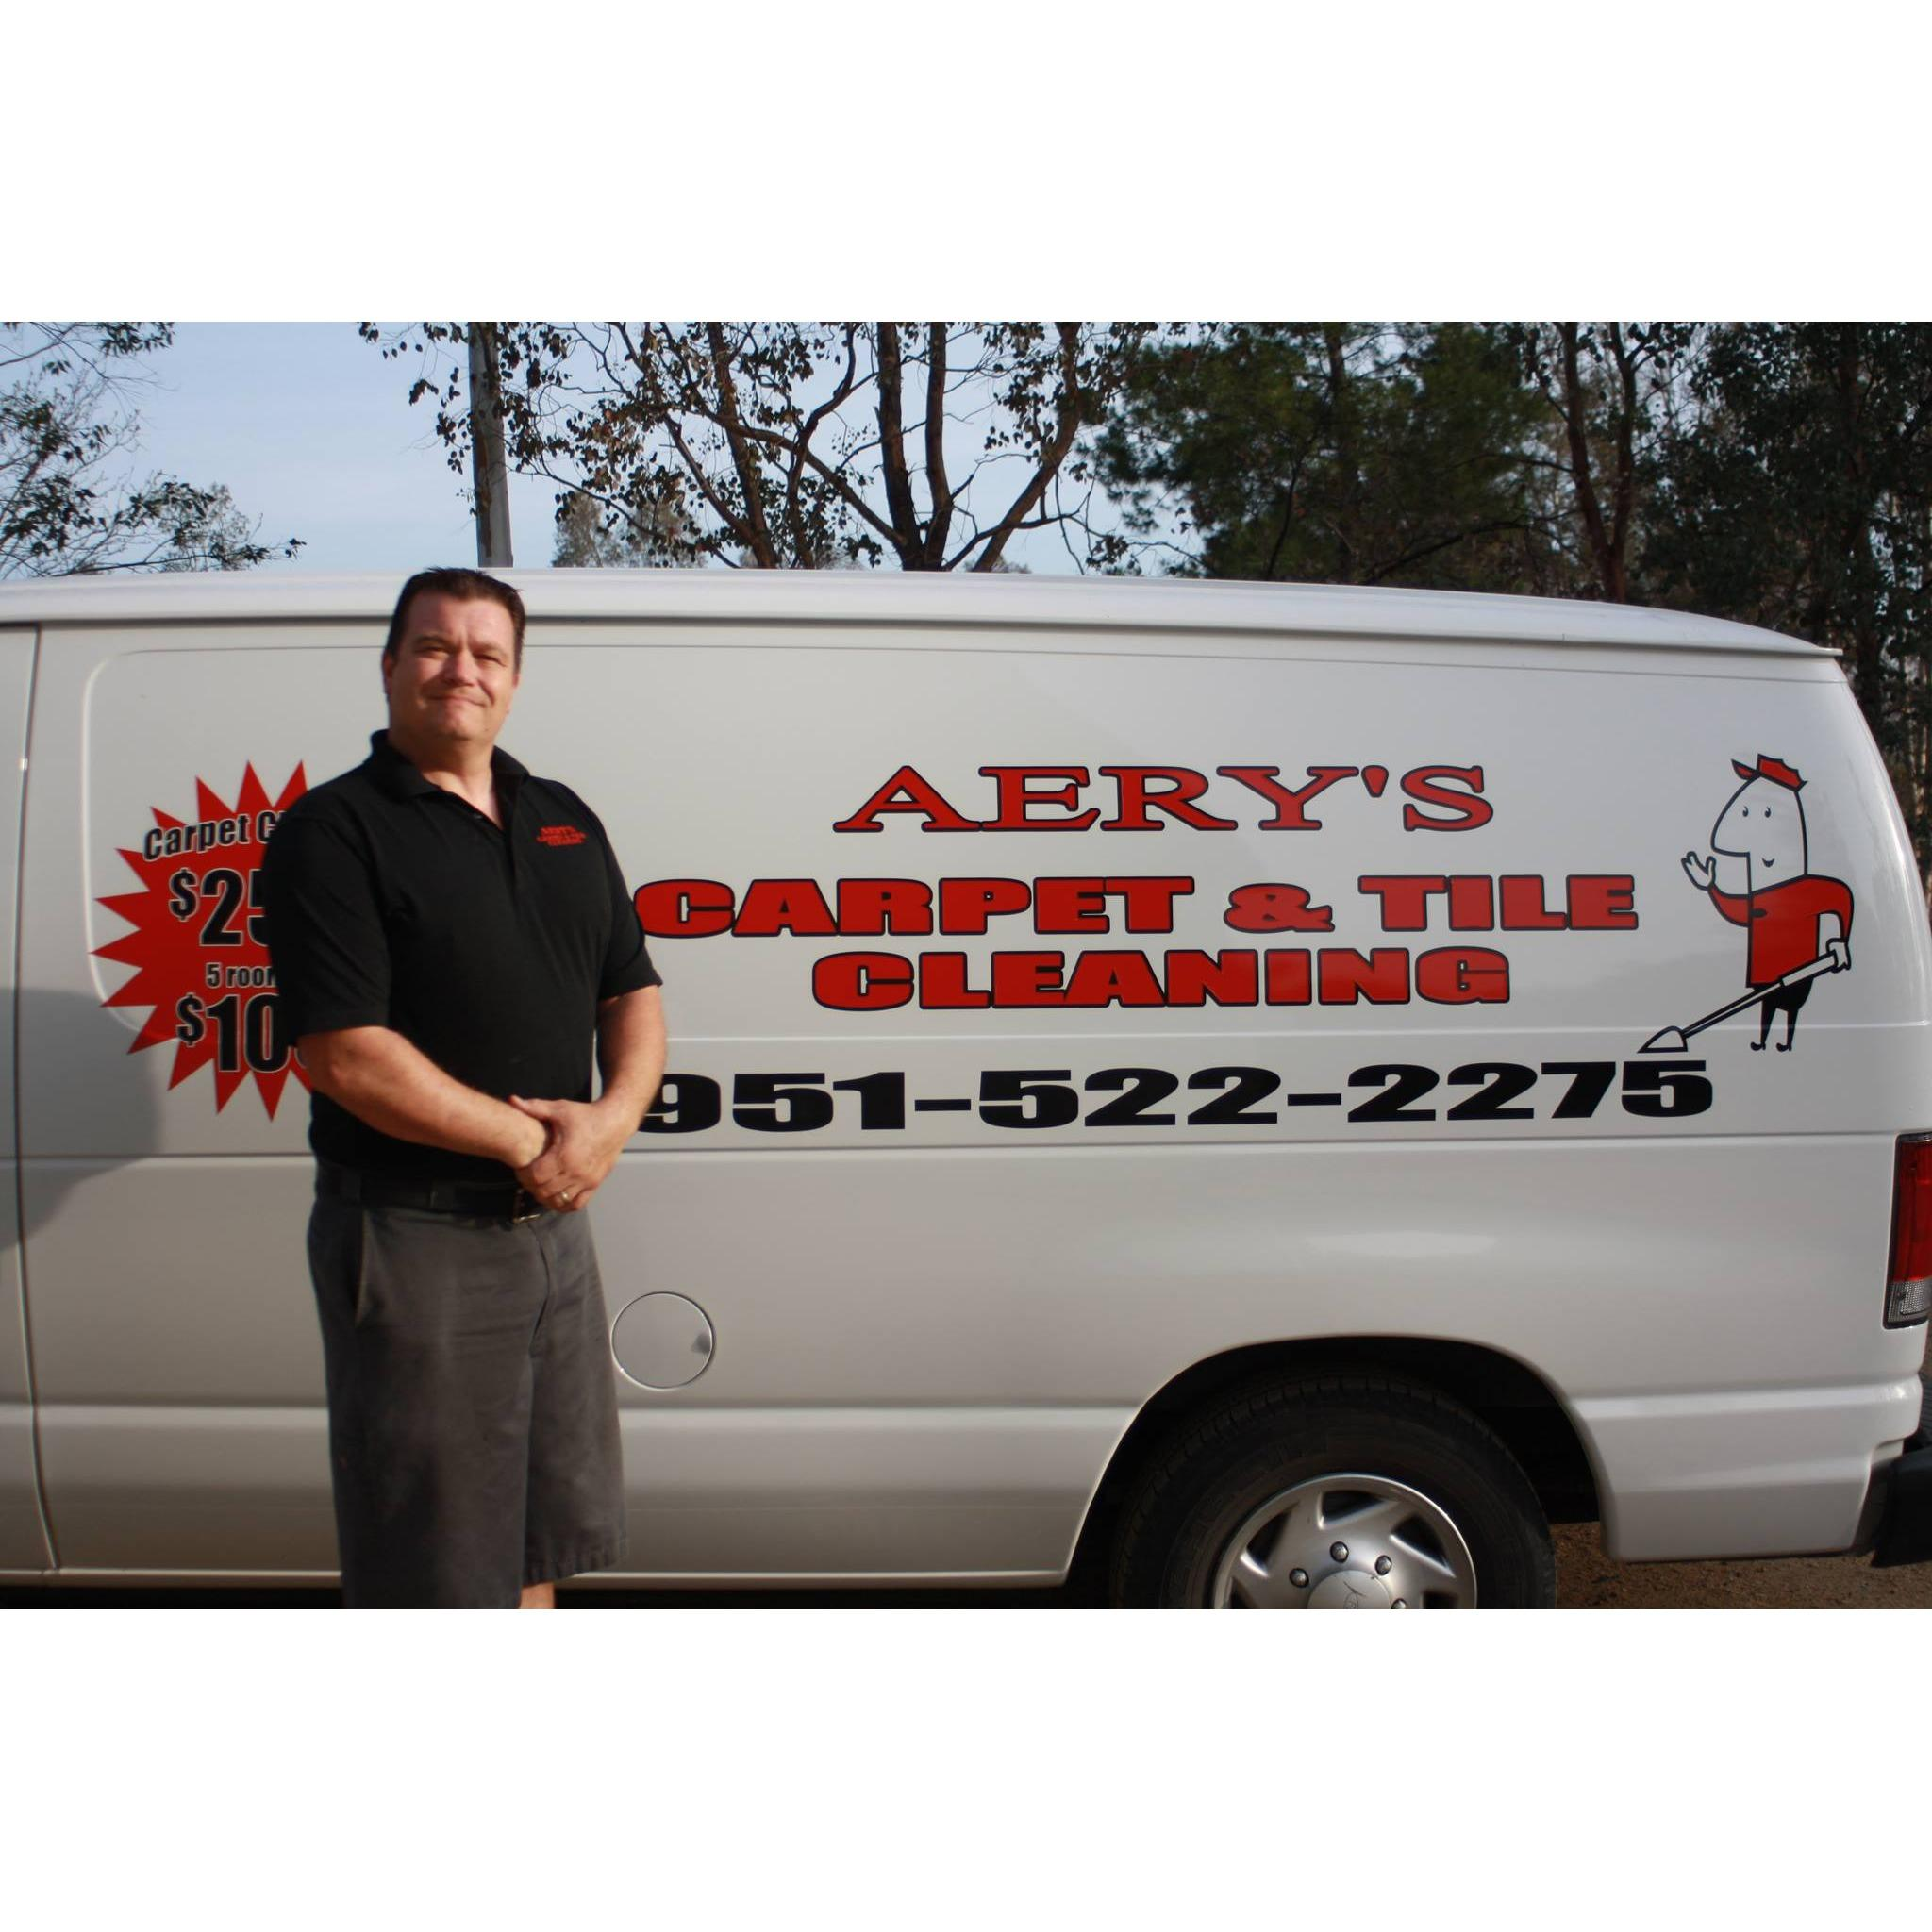 Chris Aery Carpet & Tile Cleaning